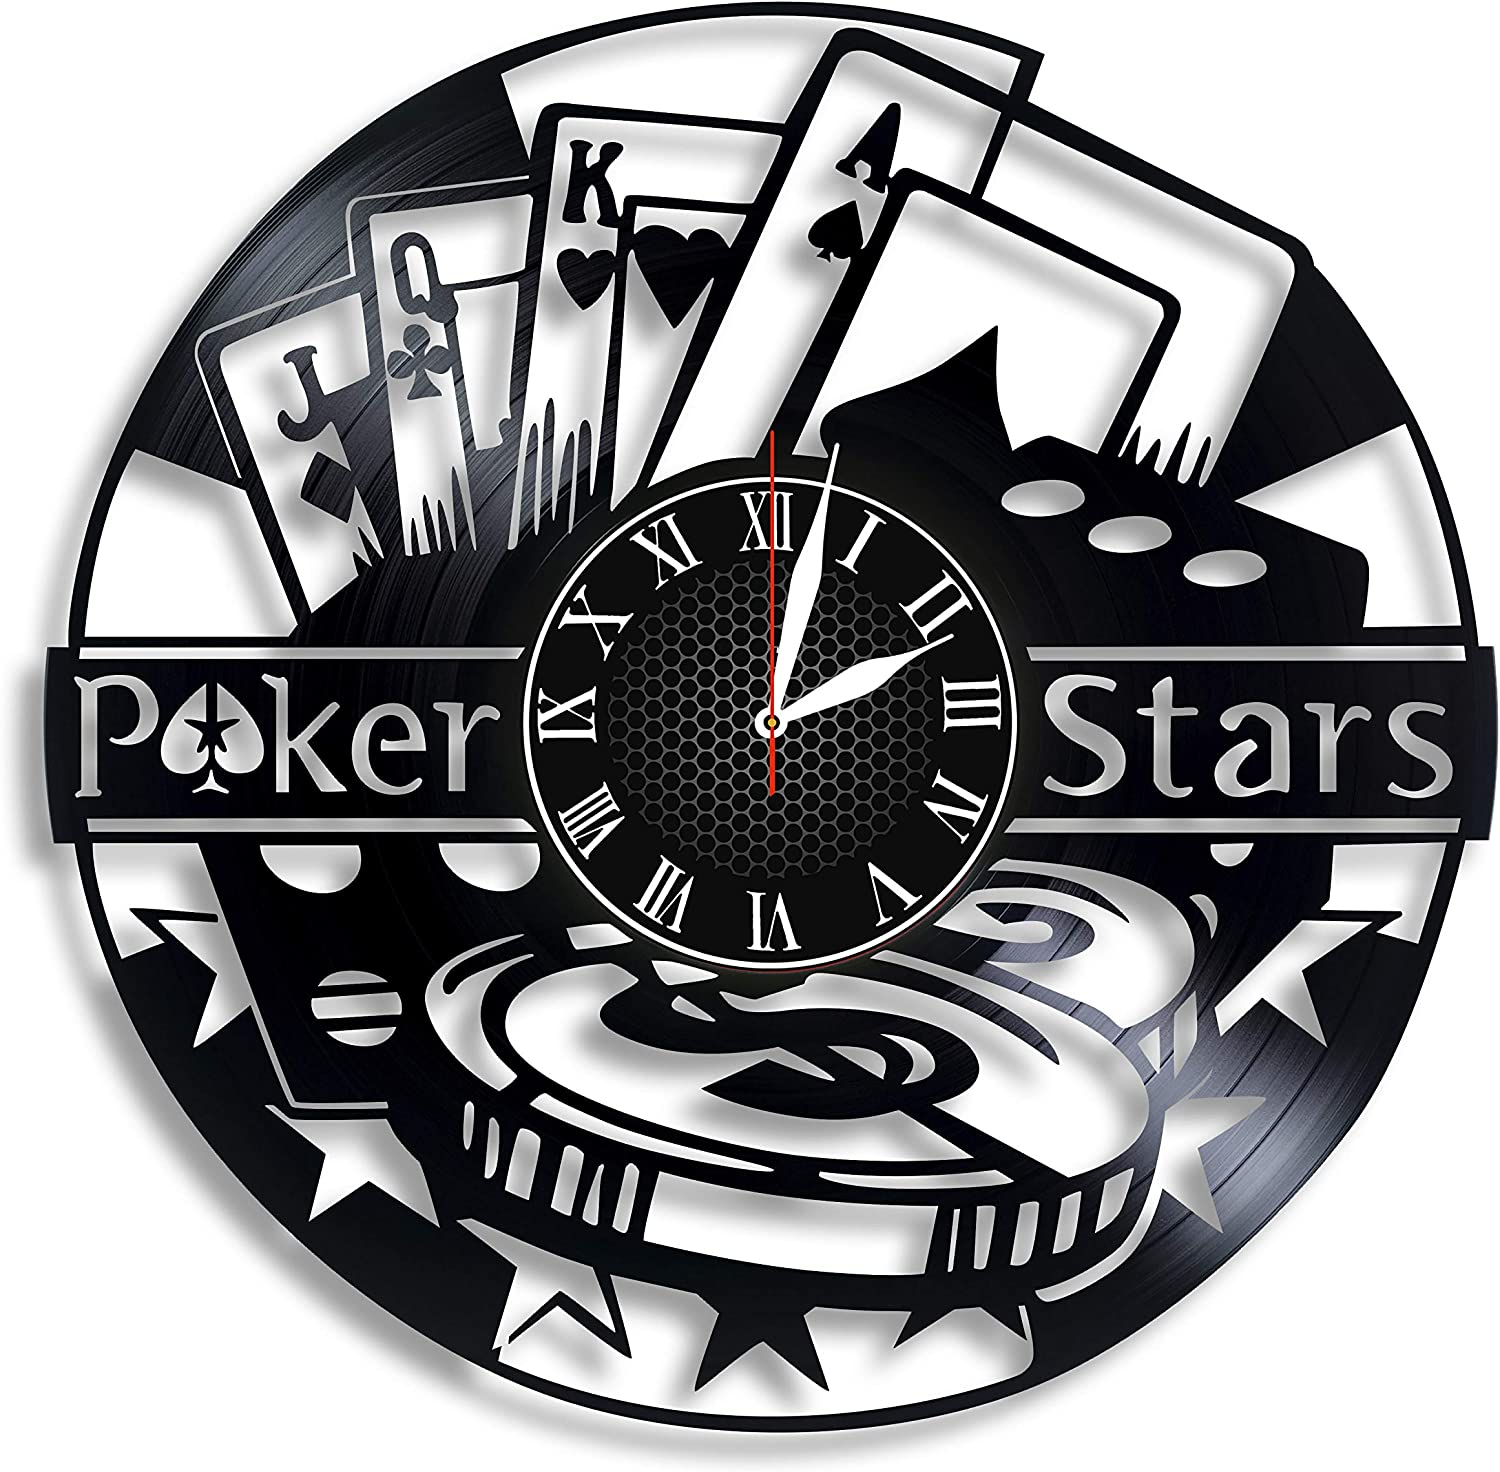 Poker Room Vinyl Wall Clock Poker Players Unique Gifts Living Room Home Decor